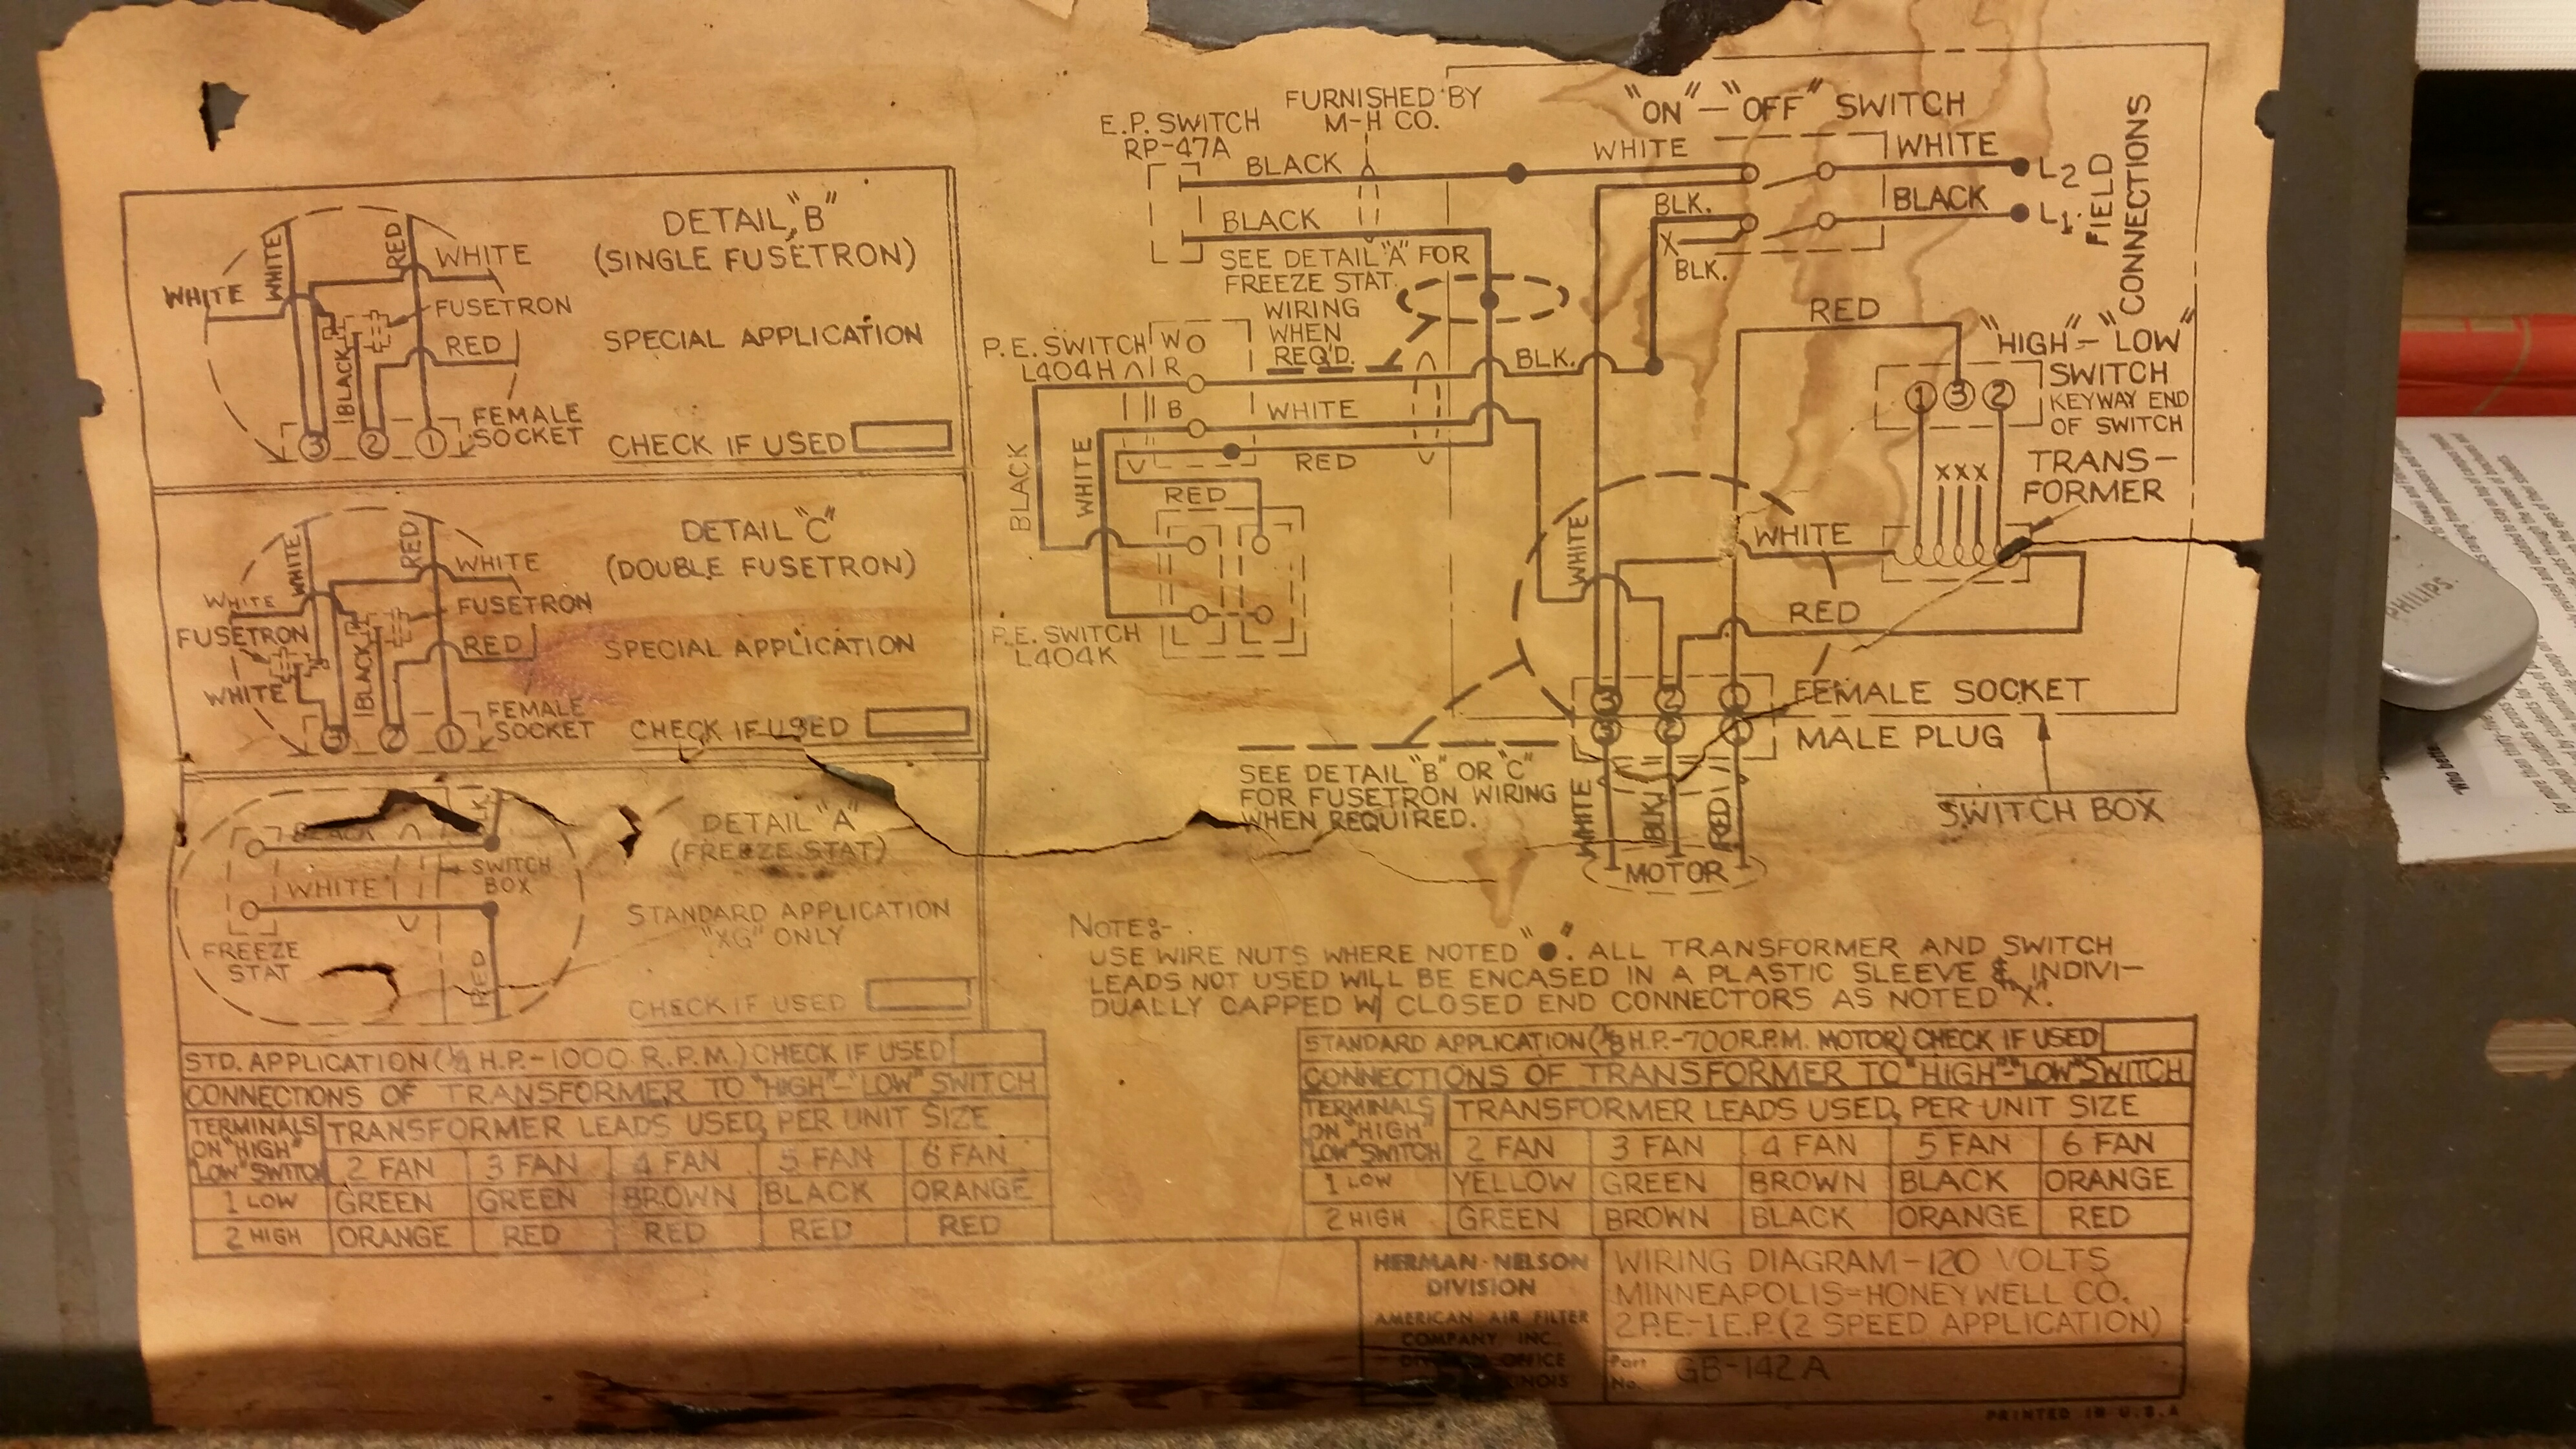 domestic wiring diagram photoelectric sensor herman nelson steam fan coil honeywell controls ...